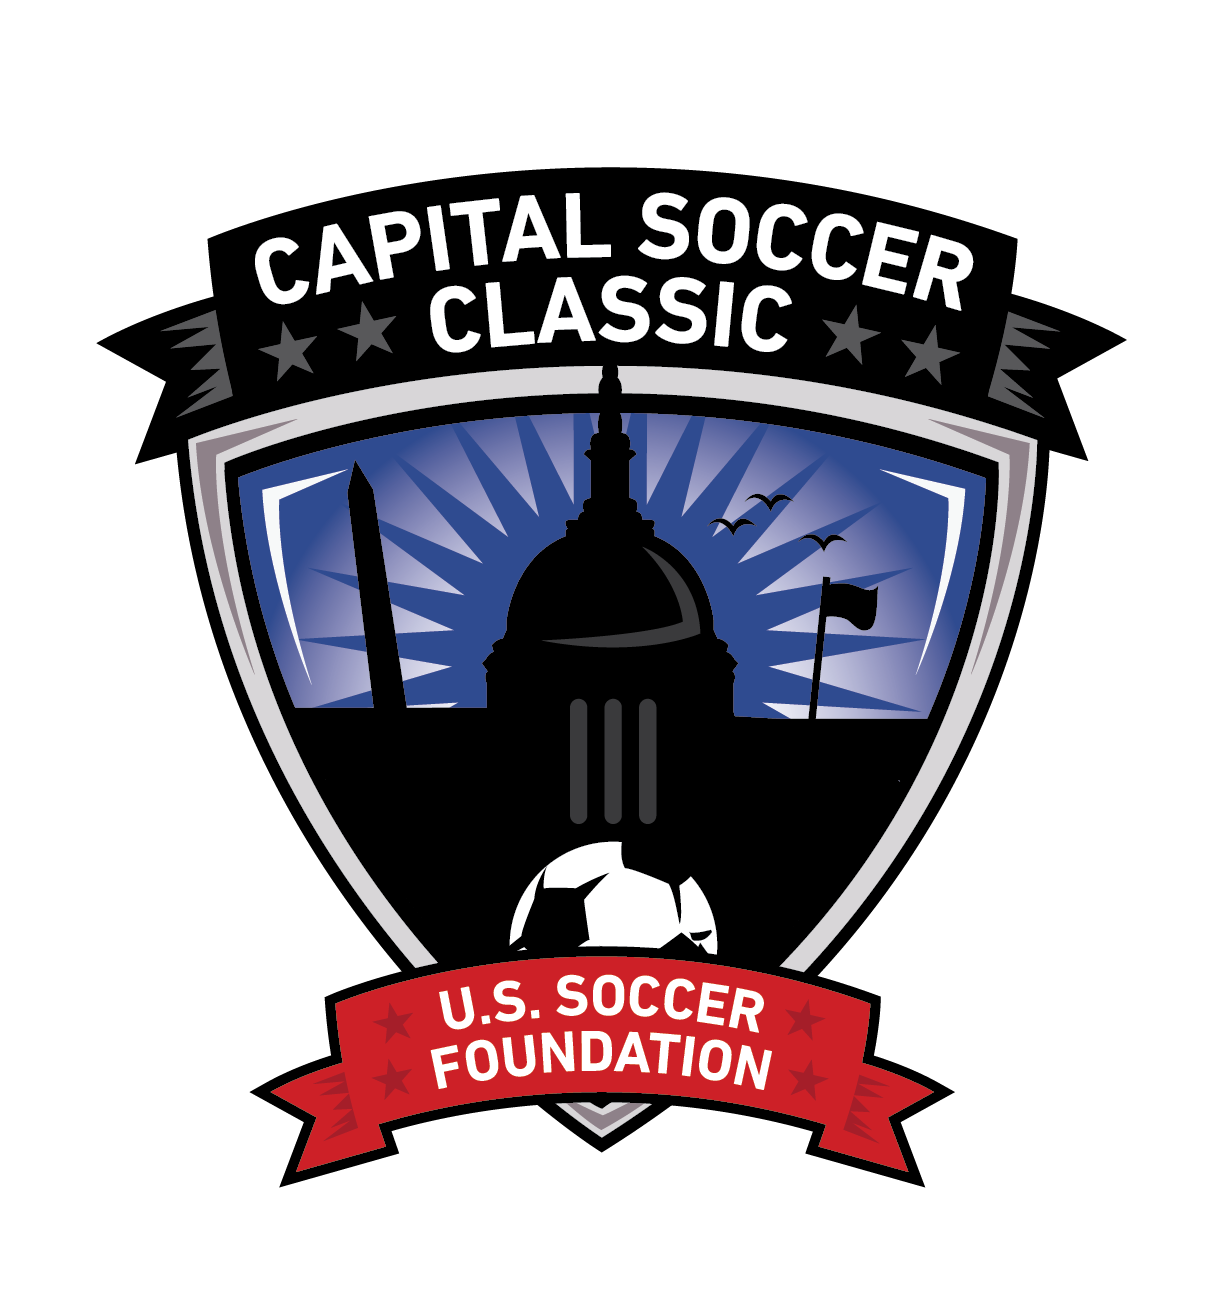 Soccer classic brings the. Usa clipart name capital